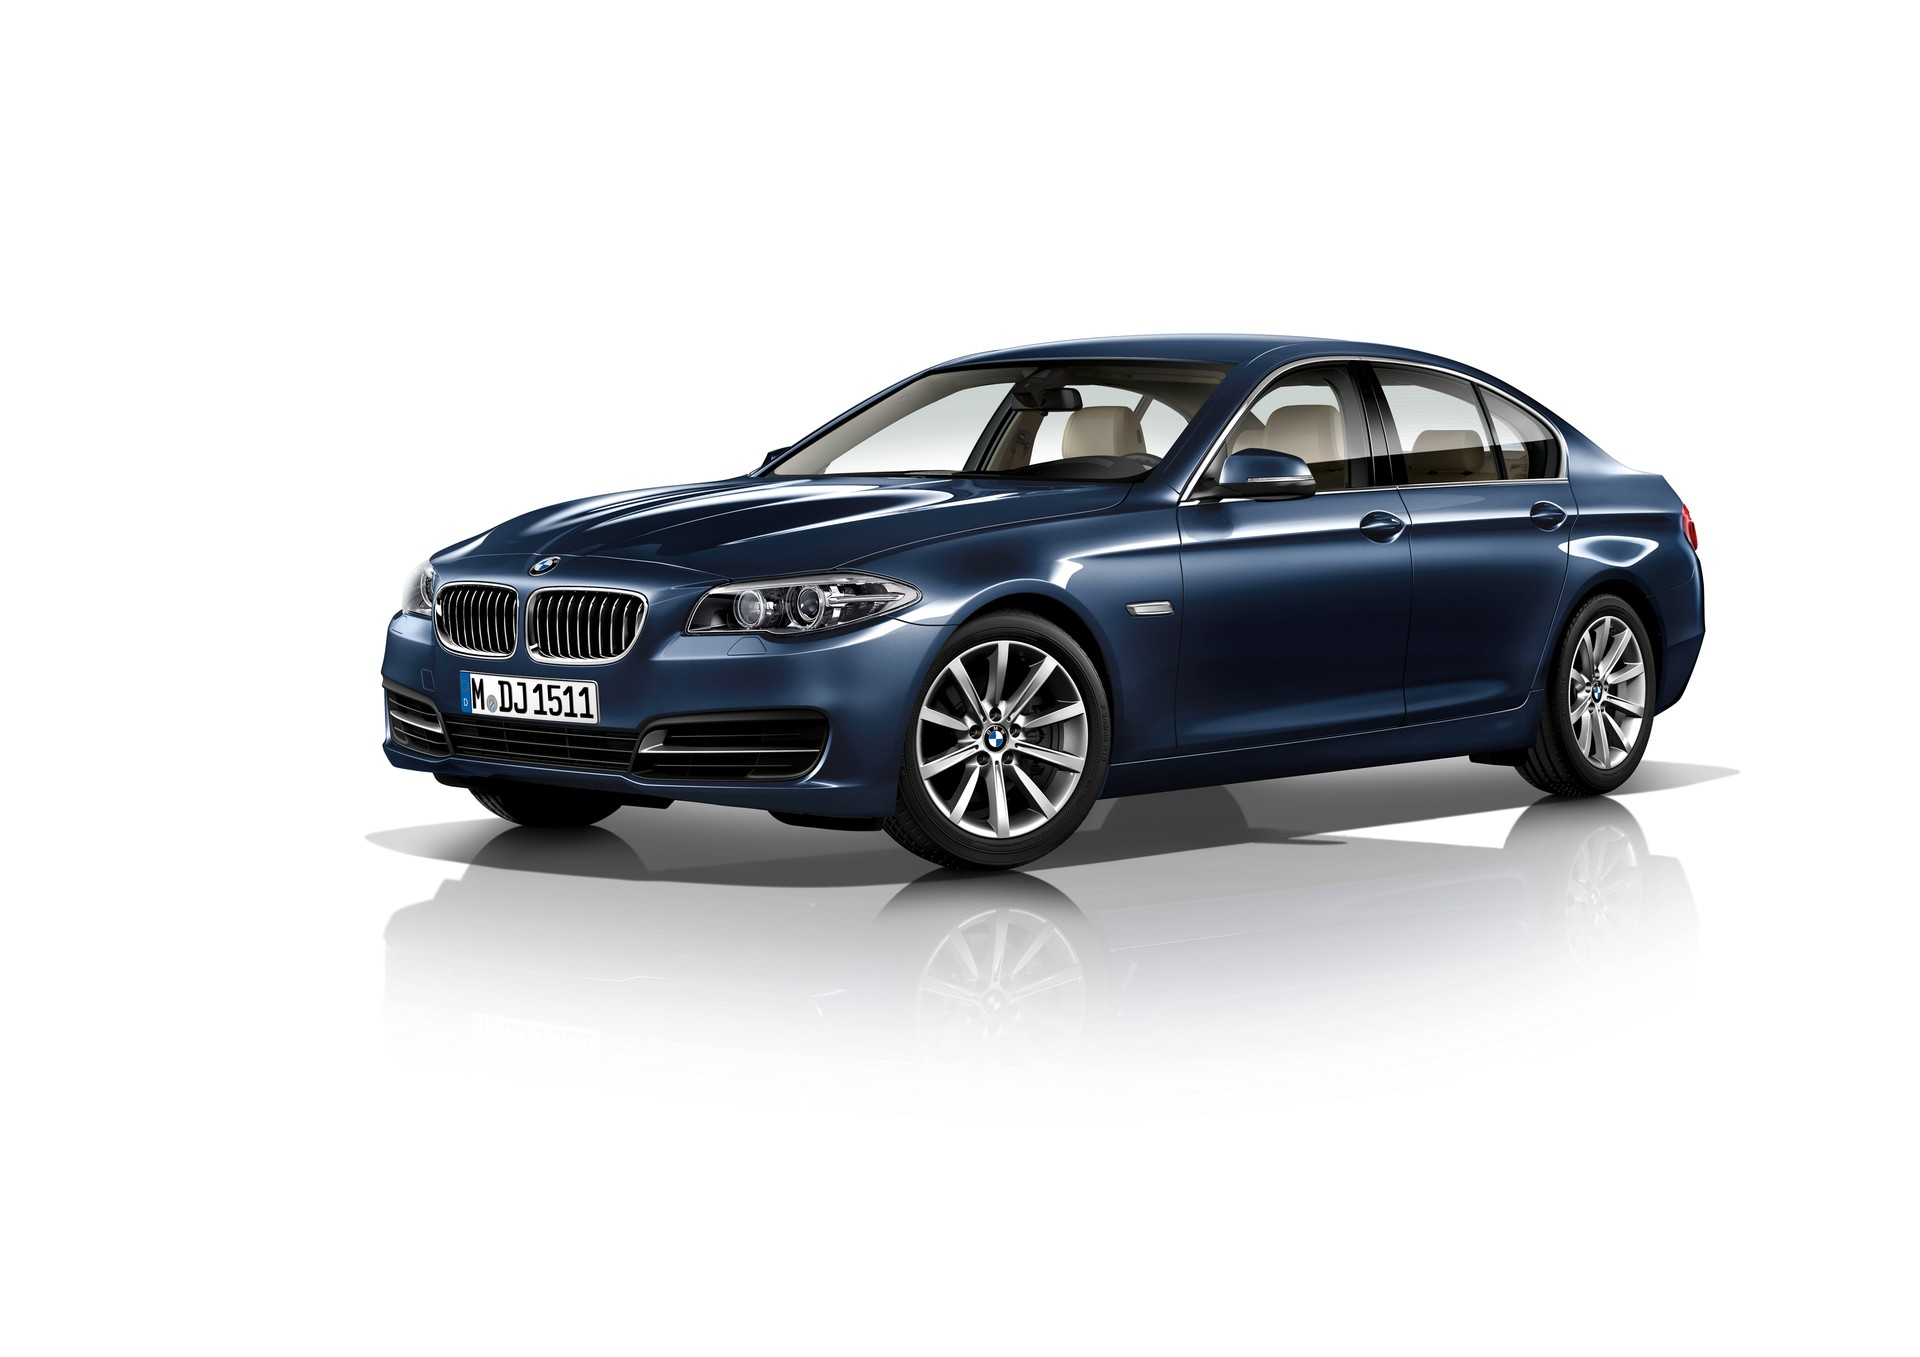 2015 Bmw 5 Series Safety Review And Crash Test Ratings